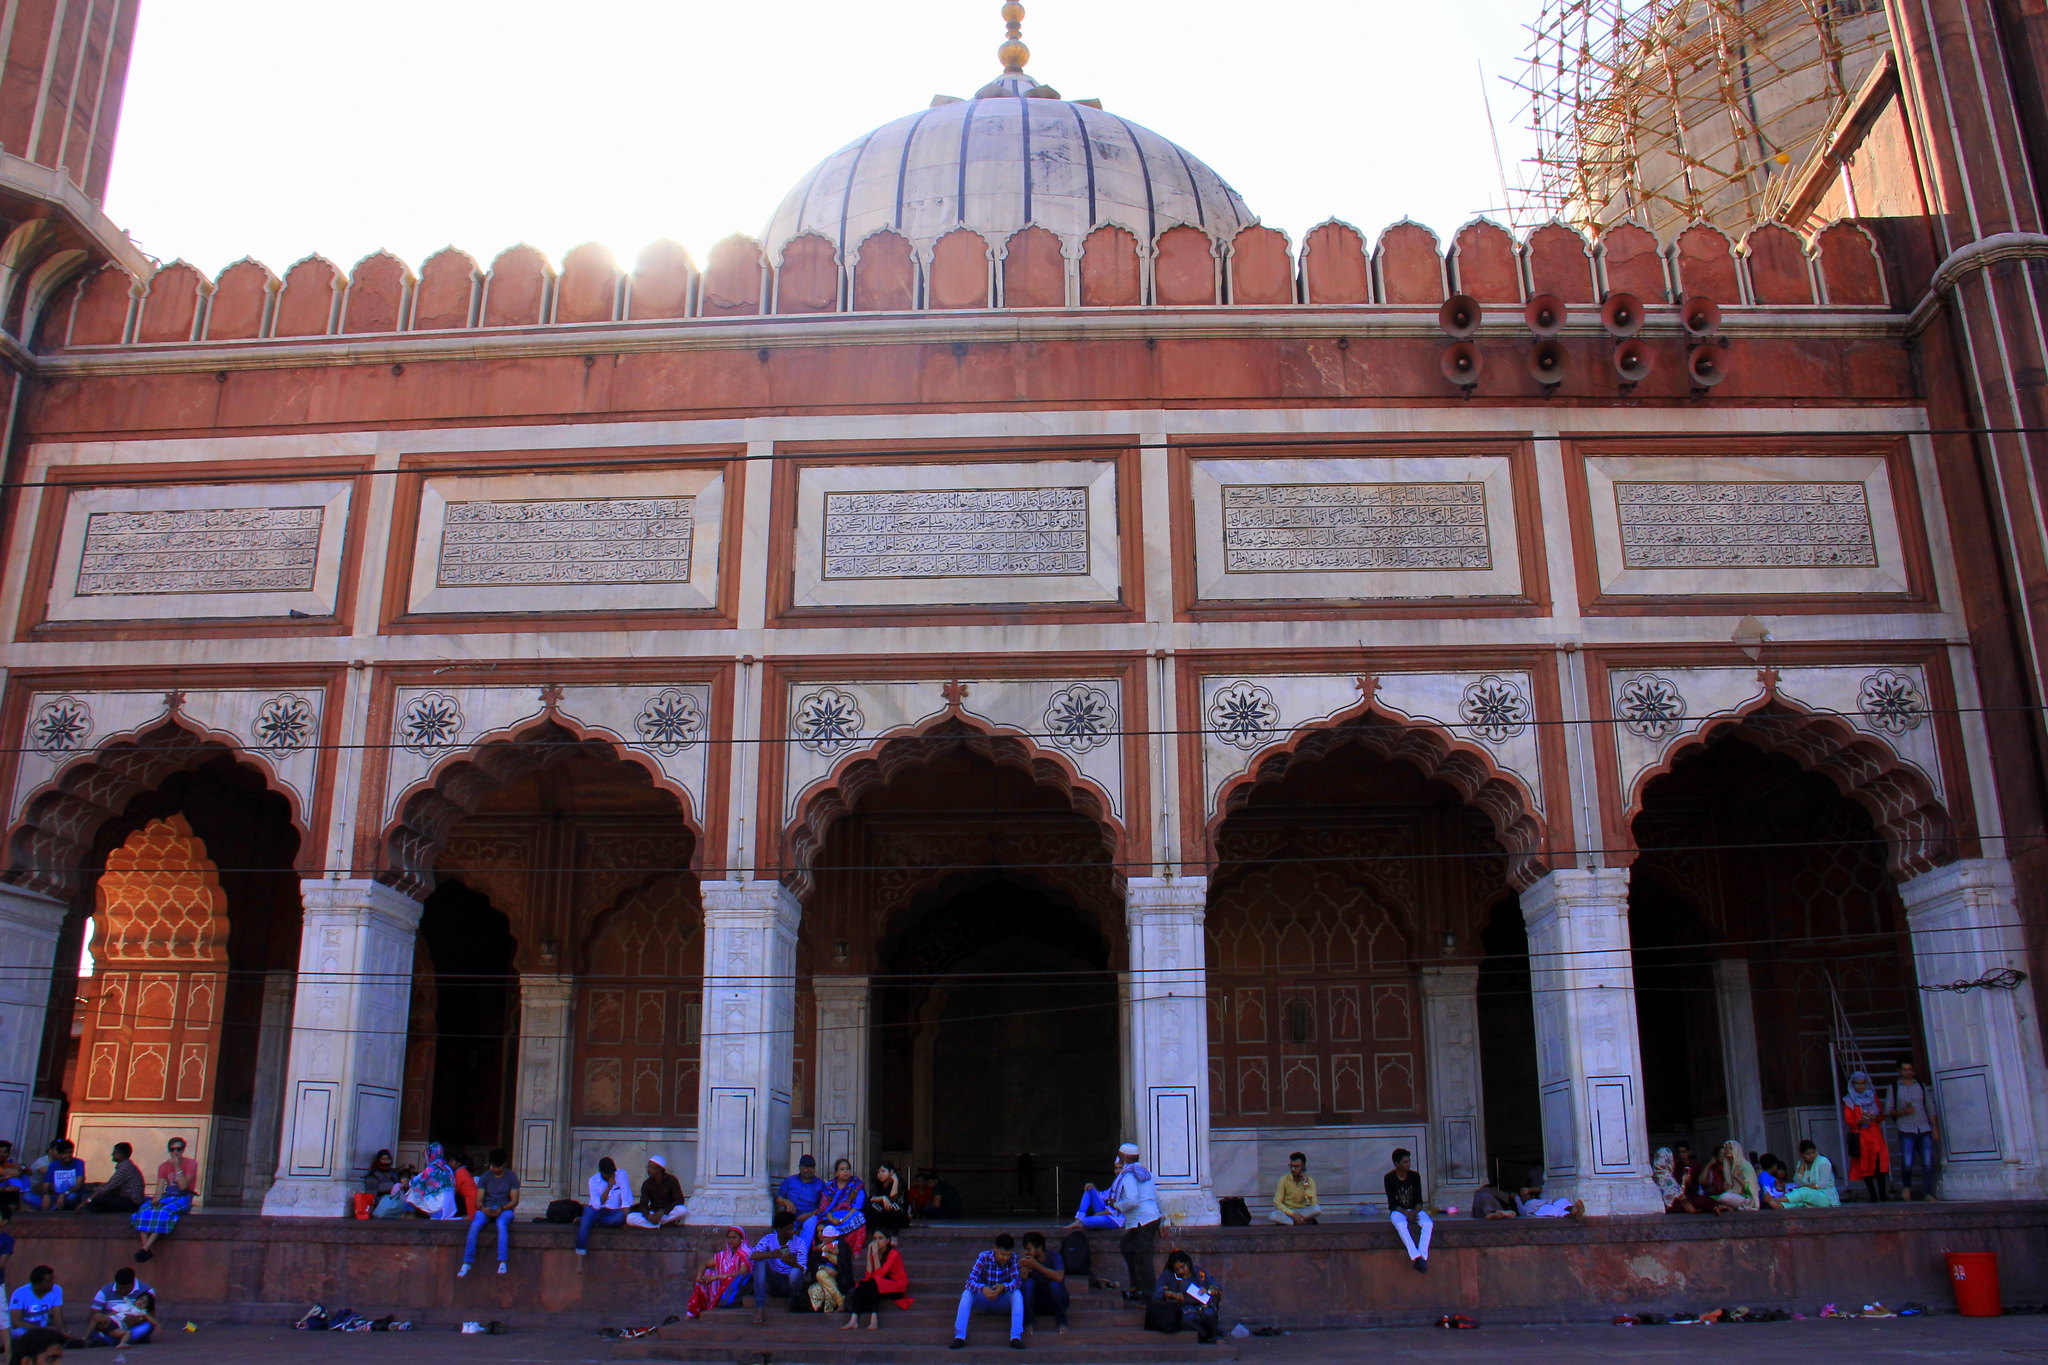 Jama Masjid is a must visit attraction in Delhi